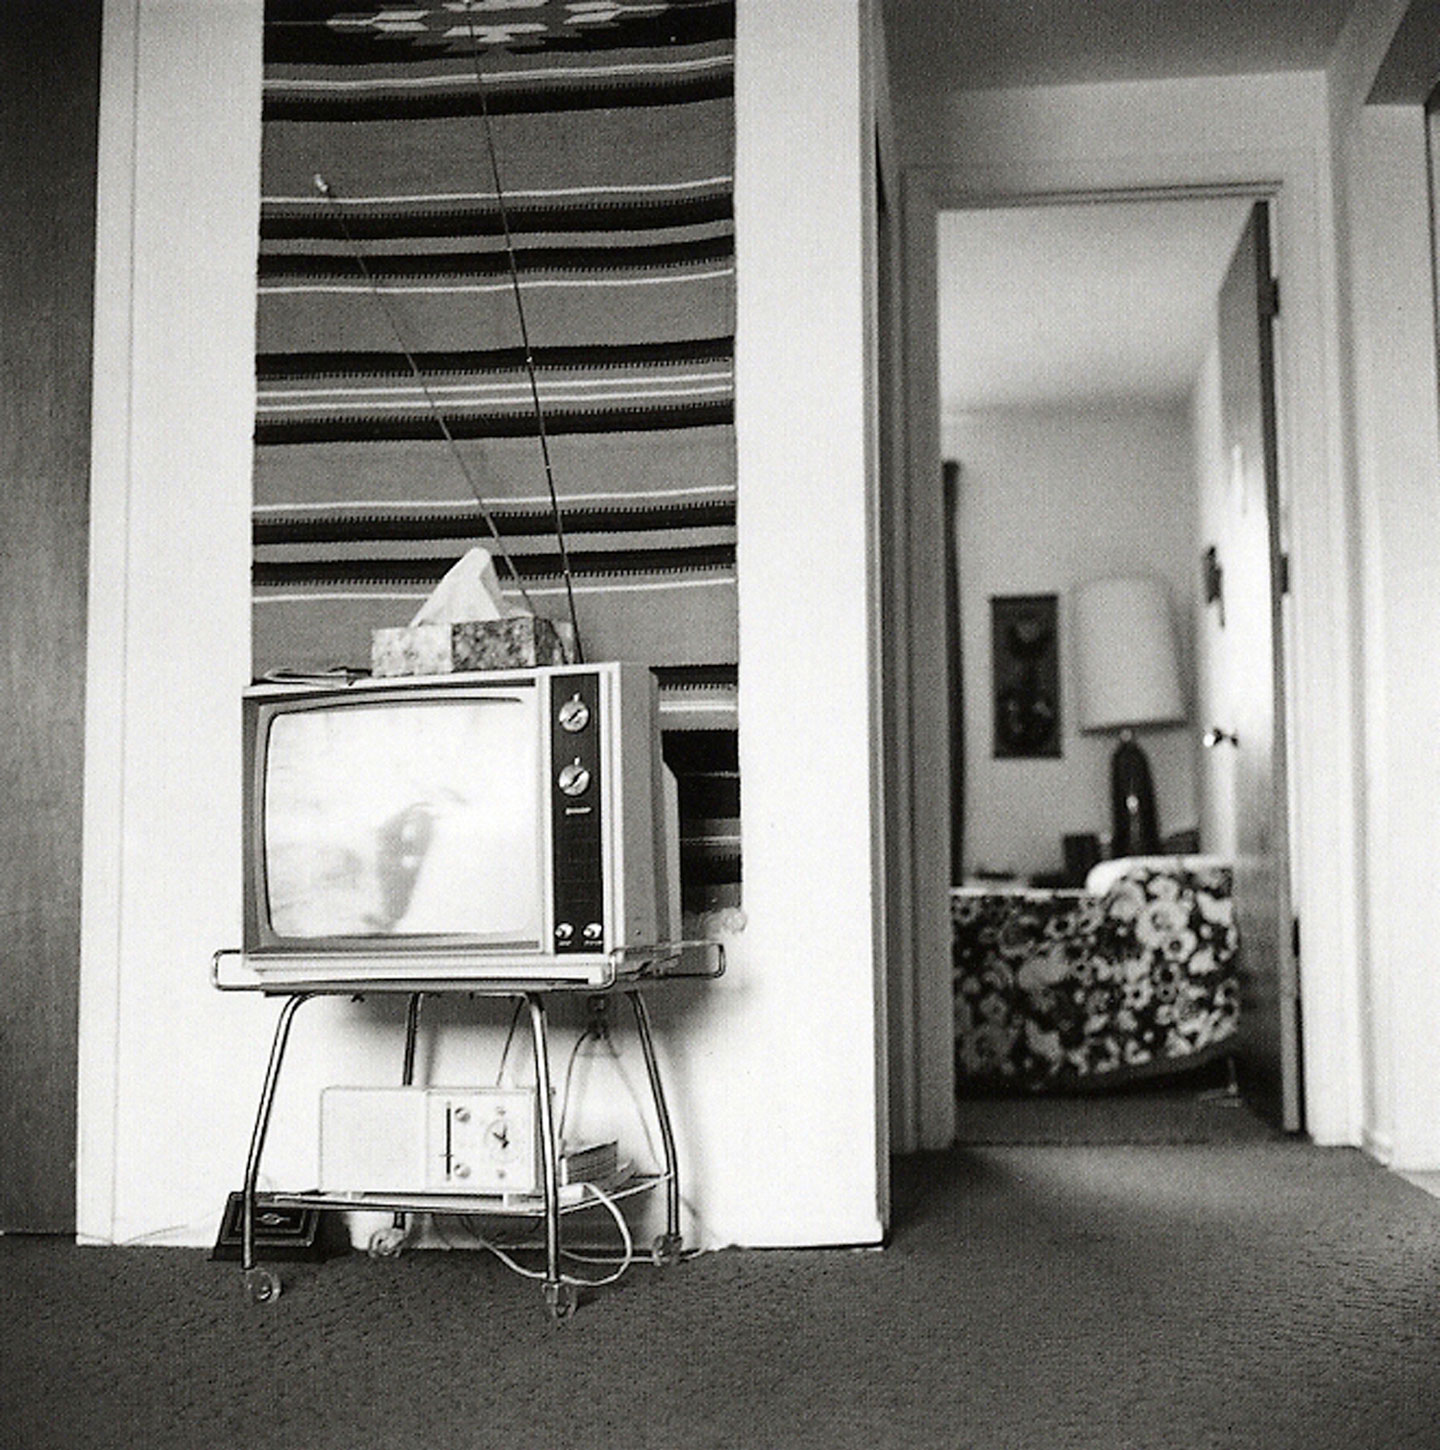 Robert Adams: Interiors 1973-1974, Limited Edition [SIGNED] [IMPERFECT]